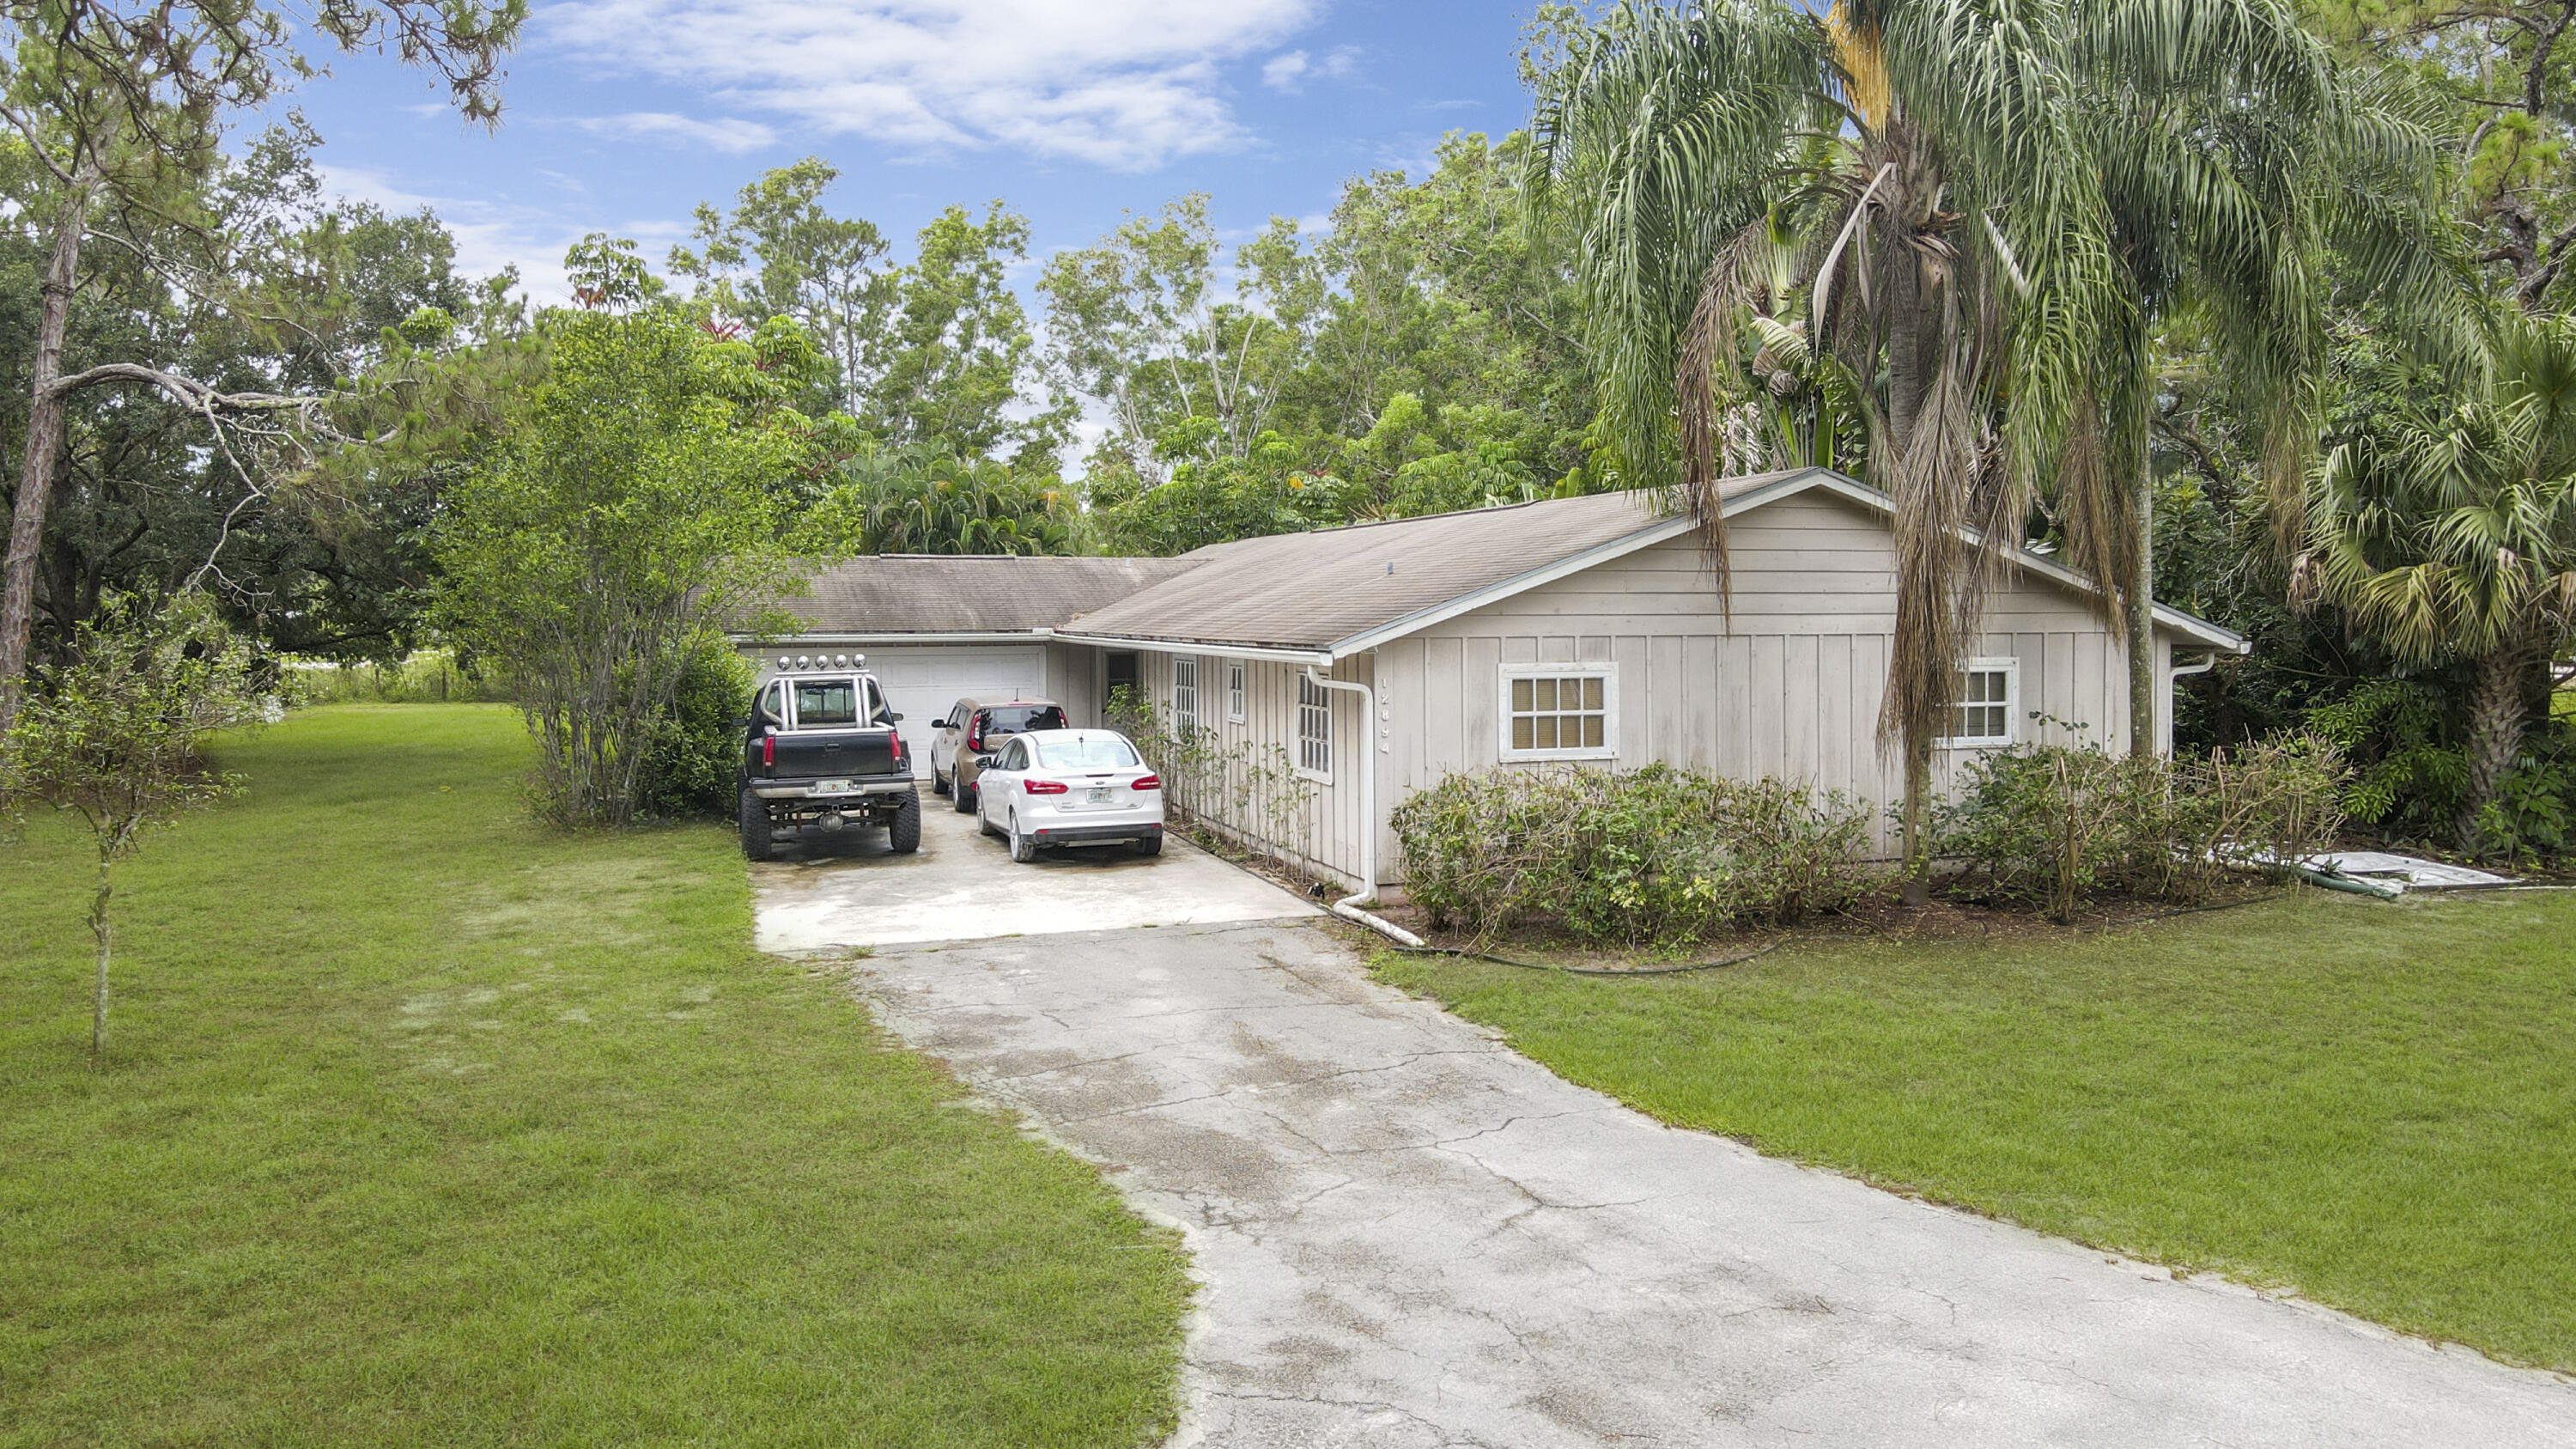 A private retreat with a private pool, over an acre of land and lots of space. And a bargain because of short sale. Hurry to see this 4/2/2 priced to sell.